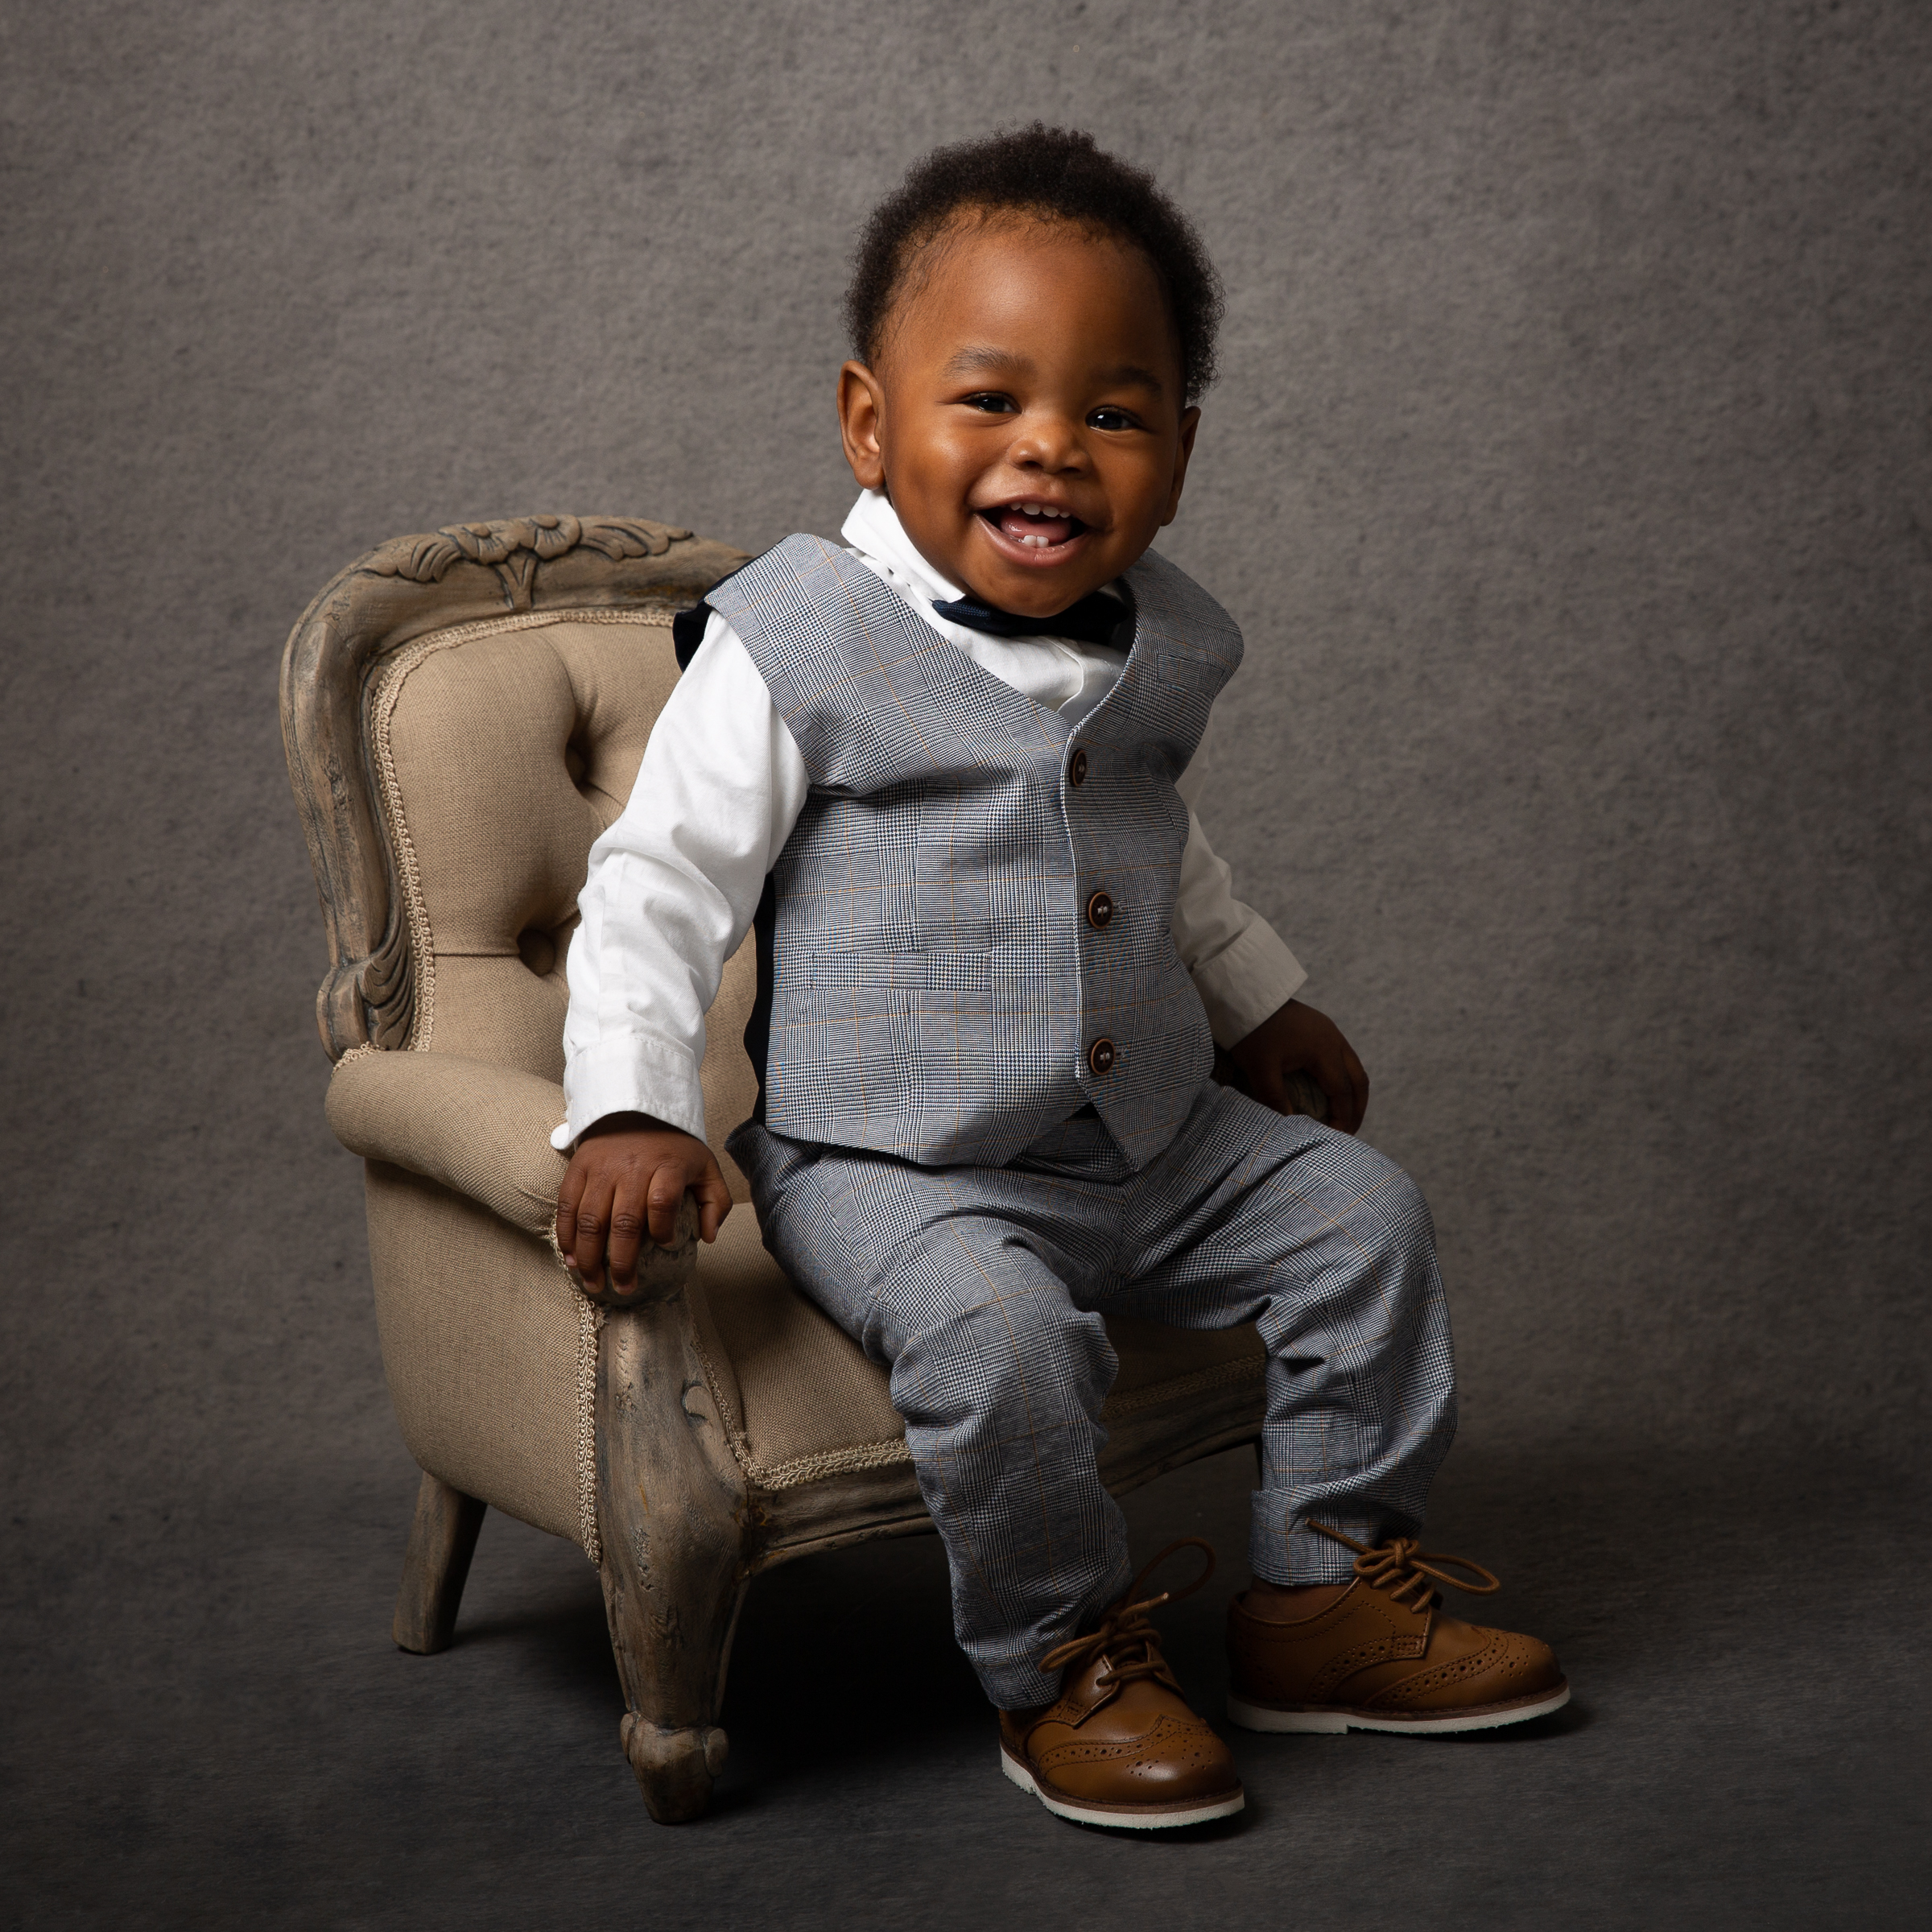 baby-boy-studio-photo-sitting-armchair-east-london-photographer.jpg